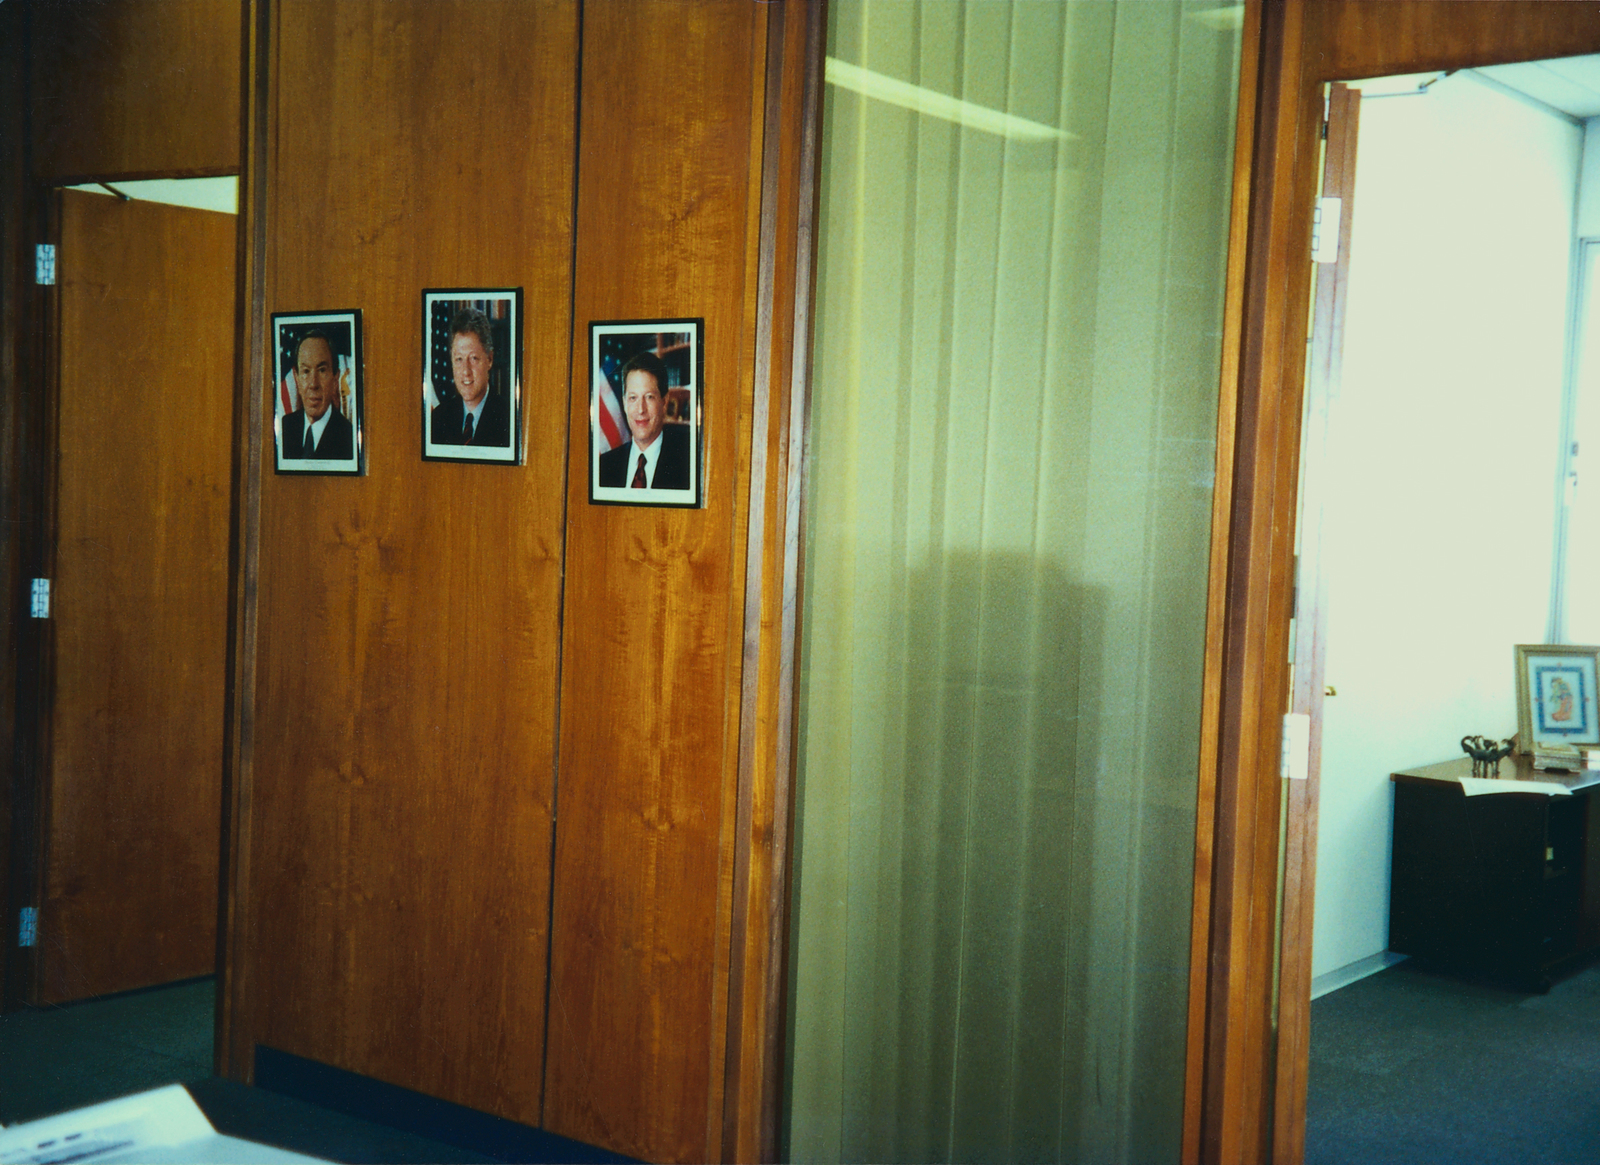 Abu Dhabi - Annex Office Building - 1996